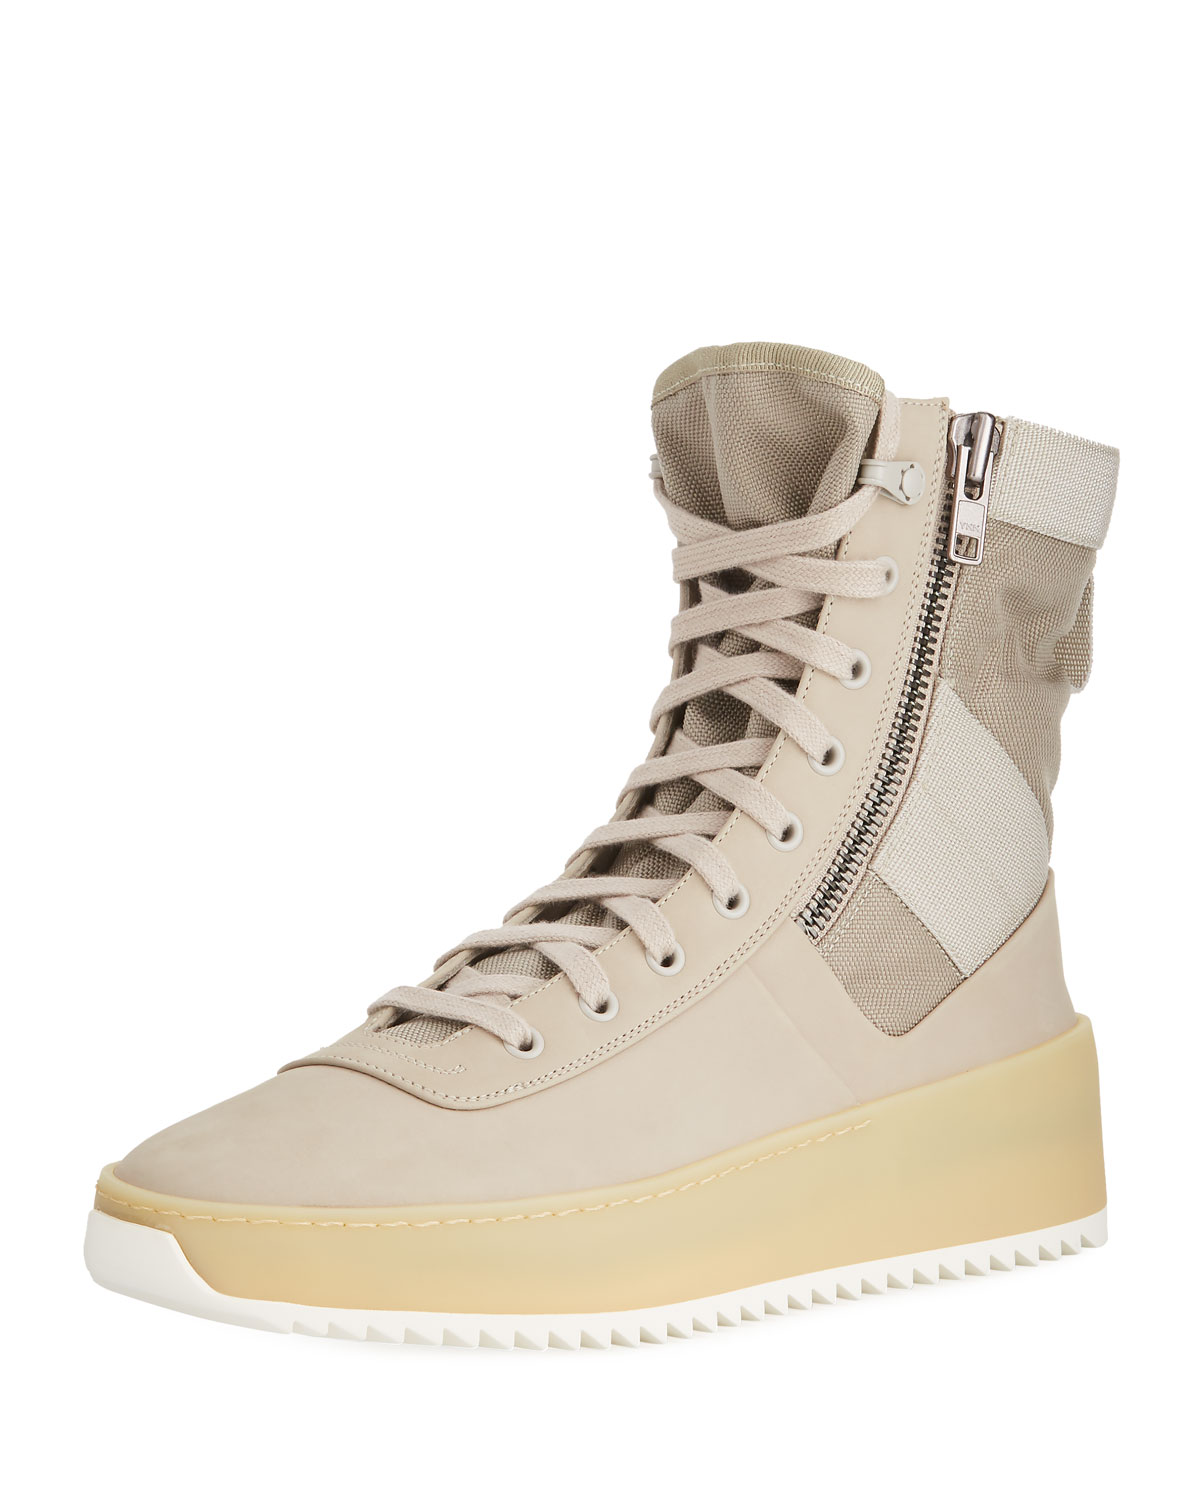 8101d2d6440c Fear of God Men s Leather High-Top Military Sneakers